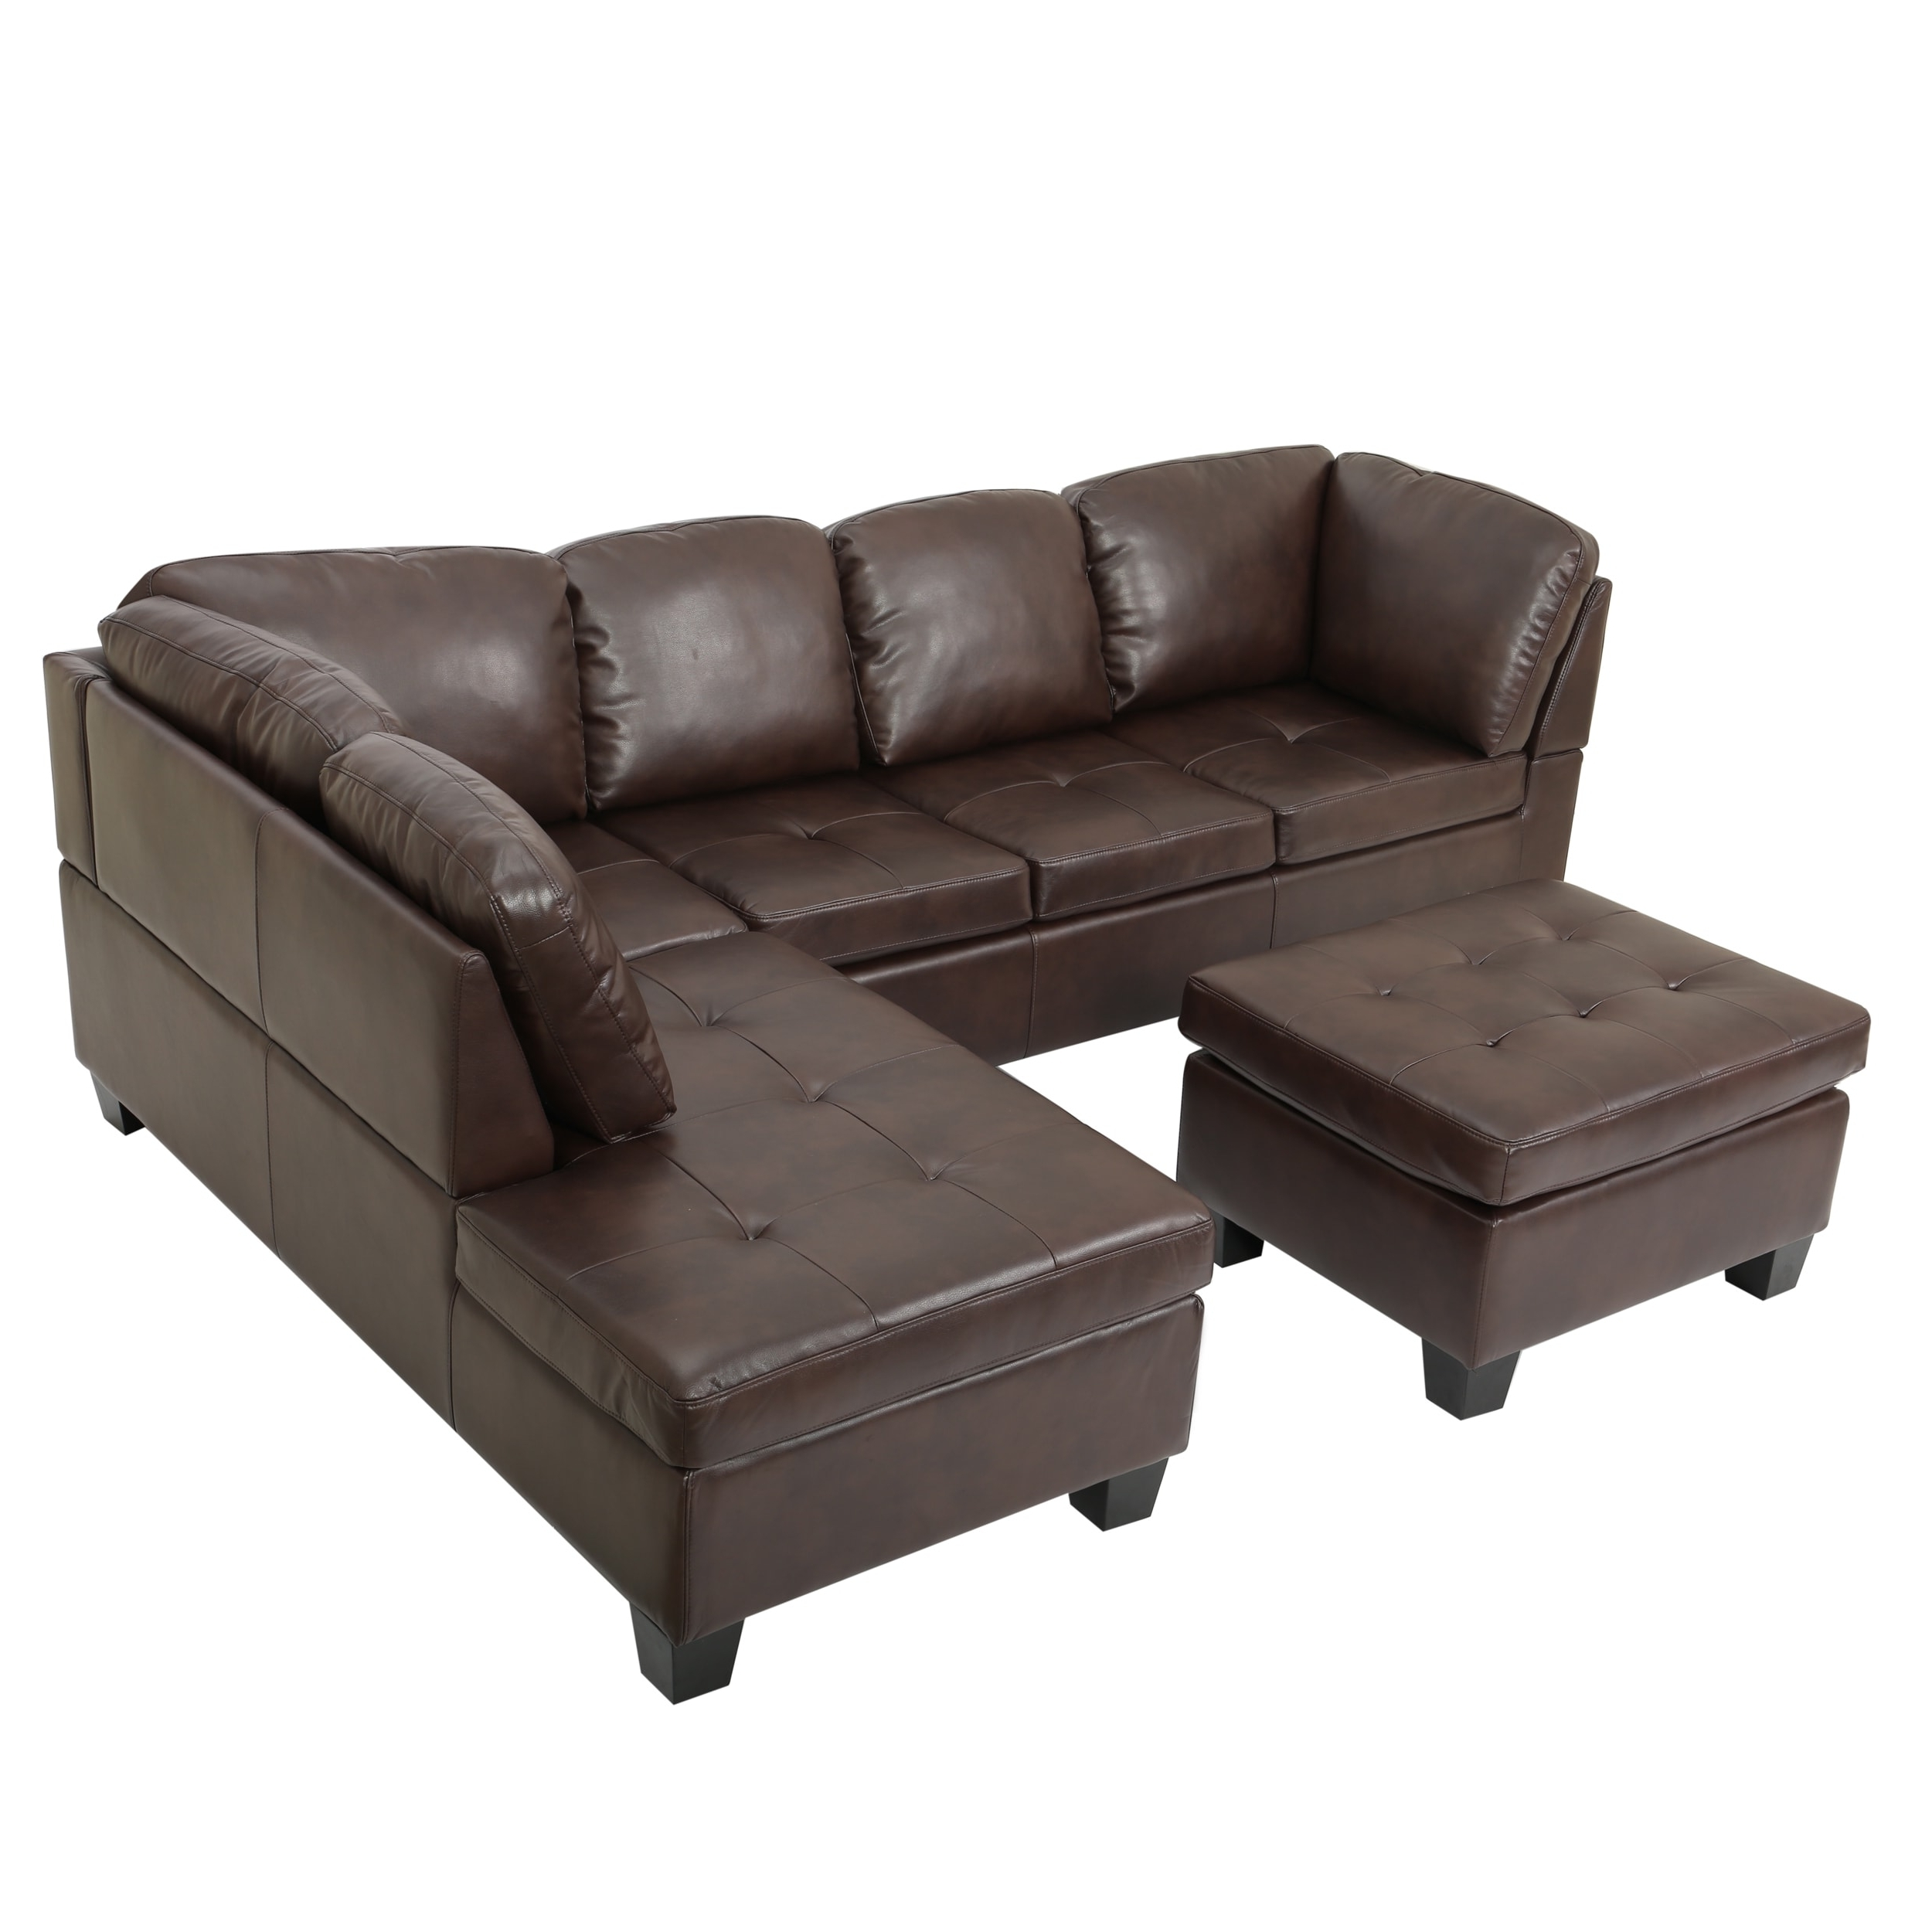 Canterbury 3 Piece Pu Leather Sectional Sofa Setchristopher Within Widely Used Canterbury Leather Sofas (View 17 of 20)